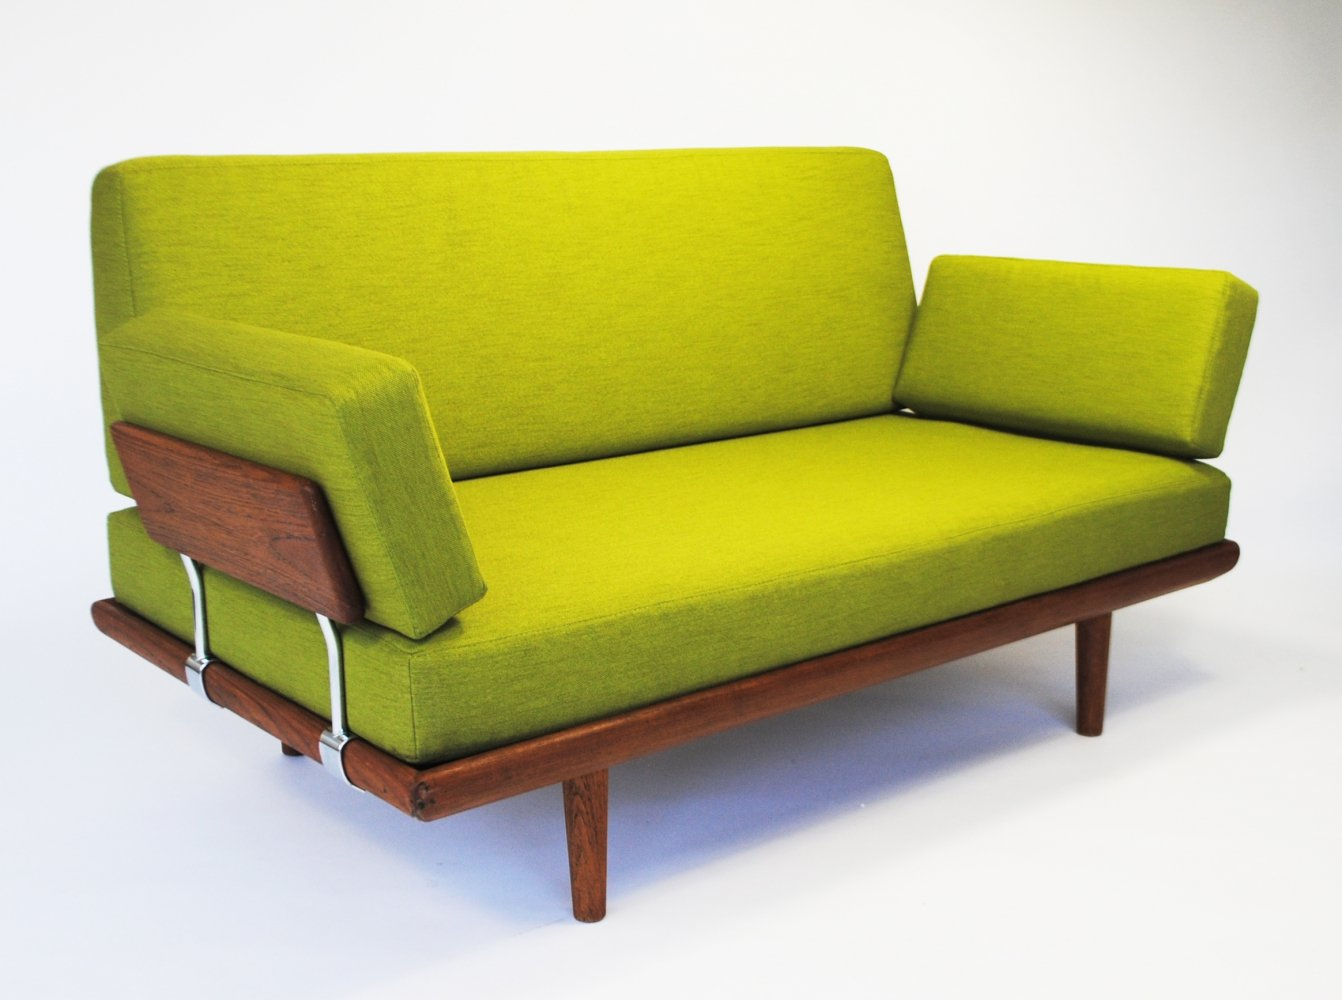 Small Minerva sofa/daybed by Hvidt & Molgaard